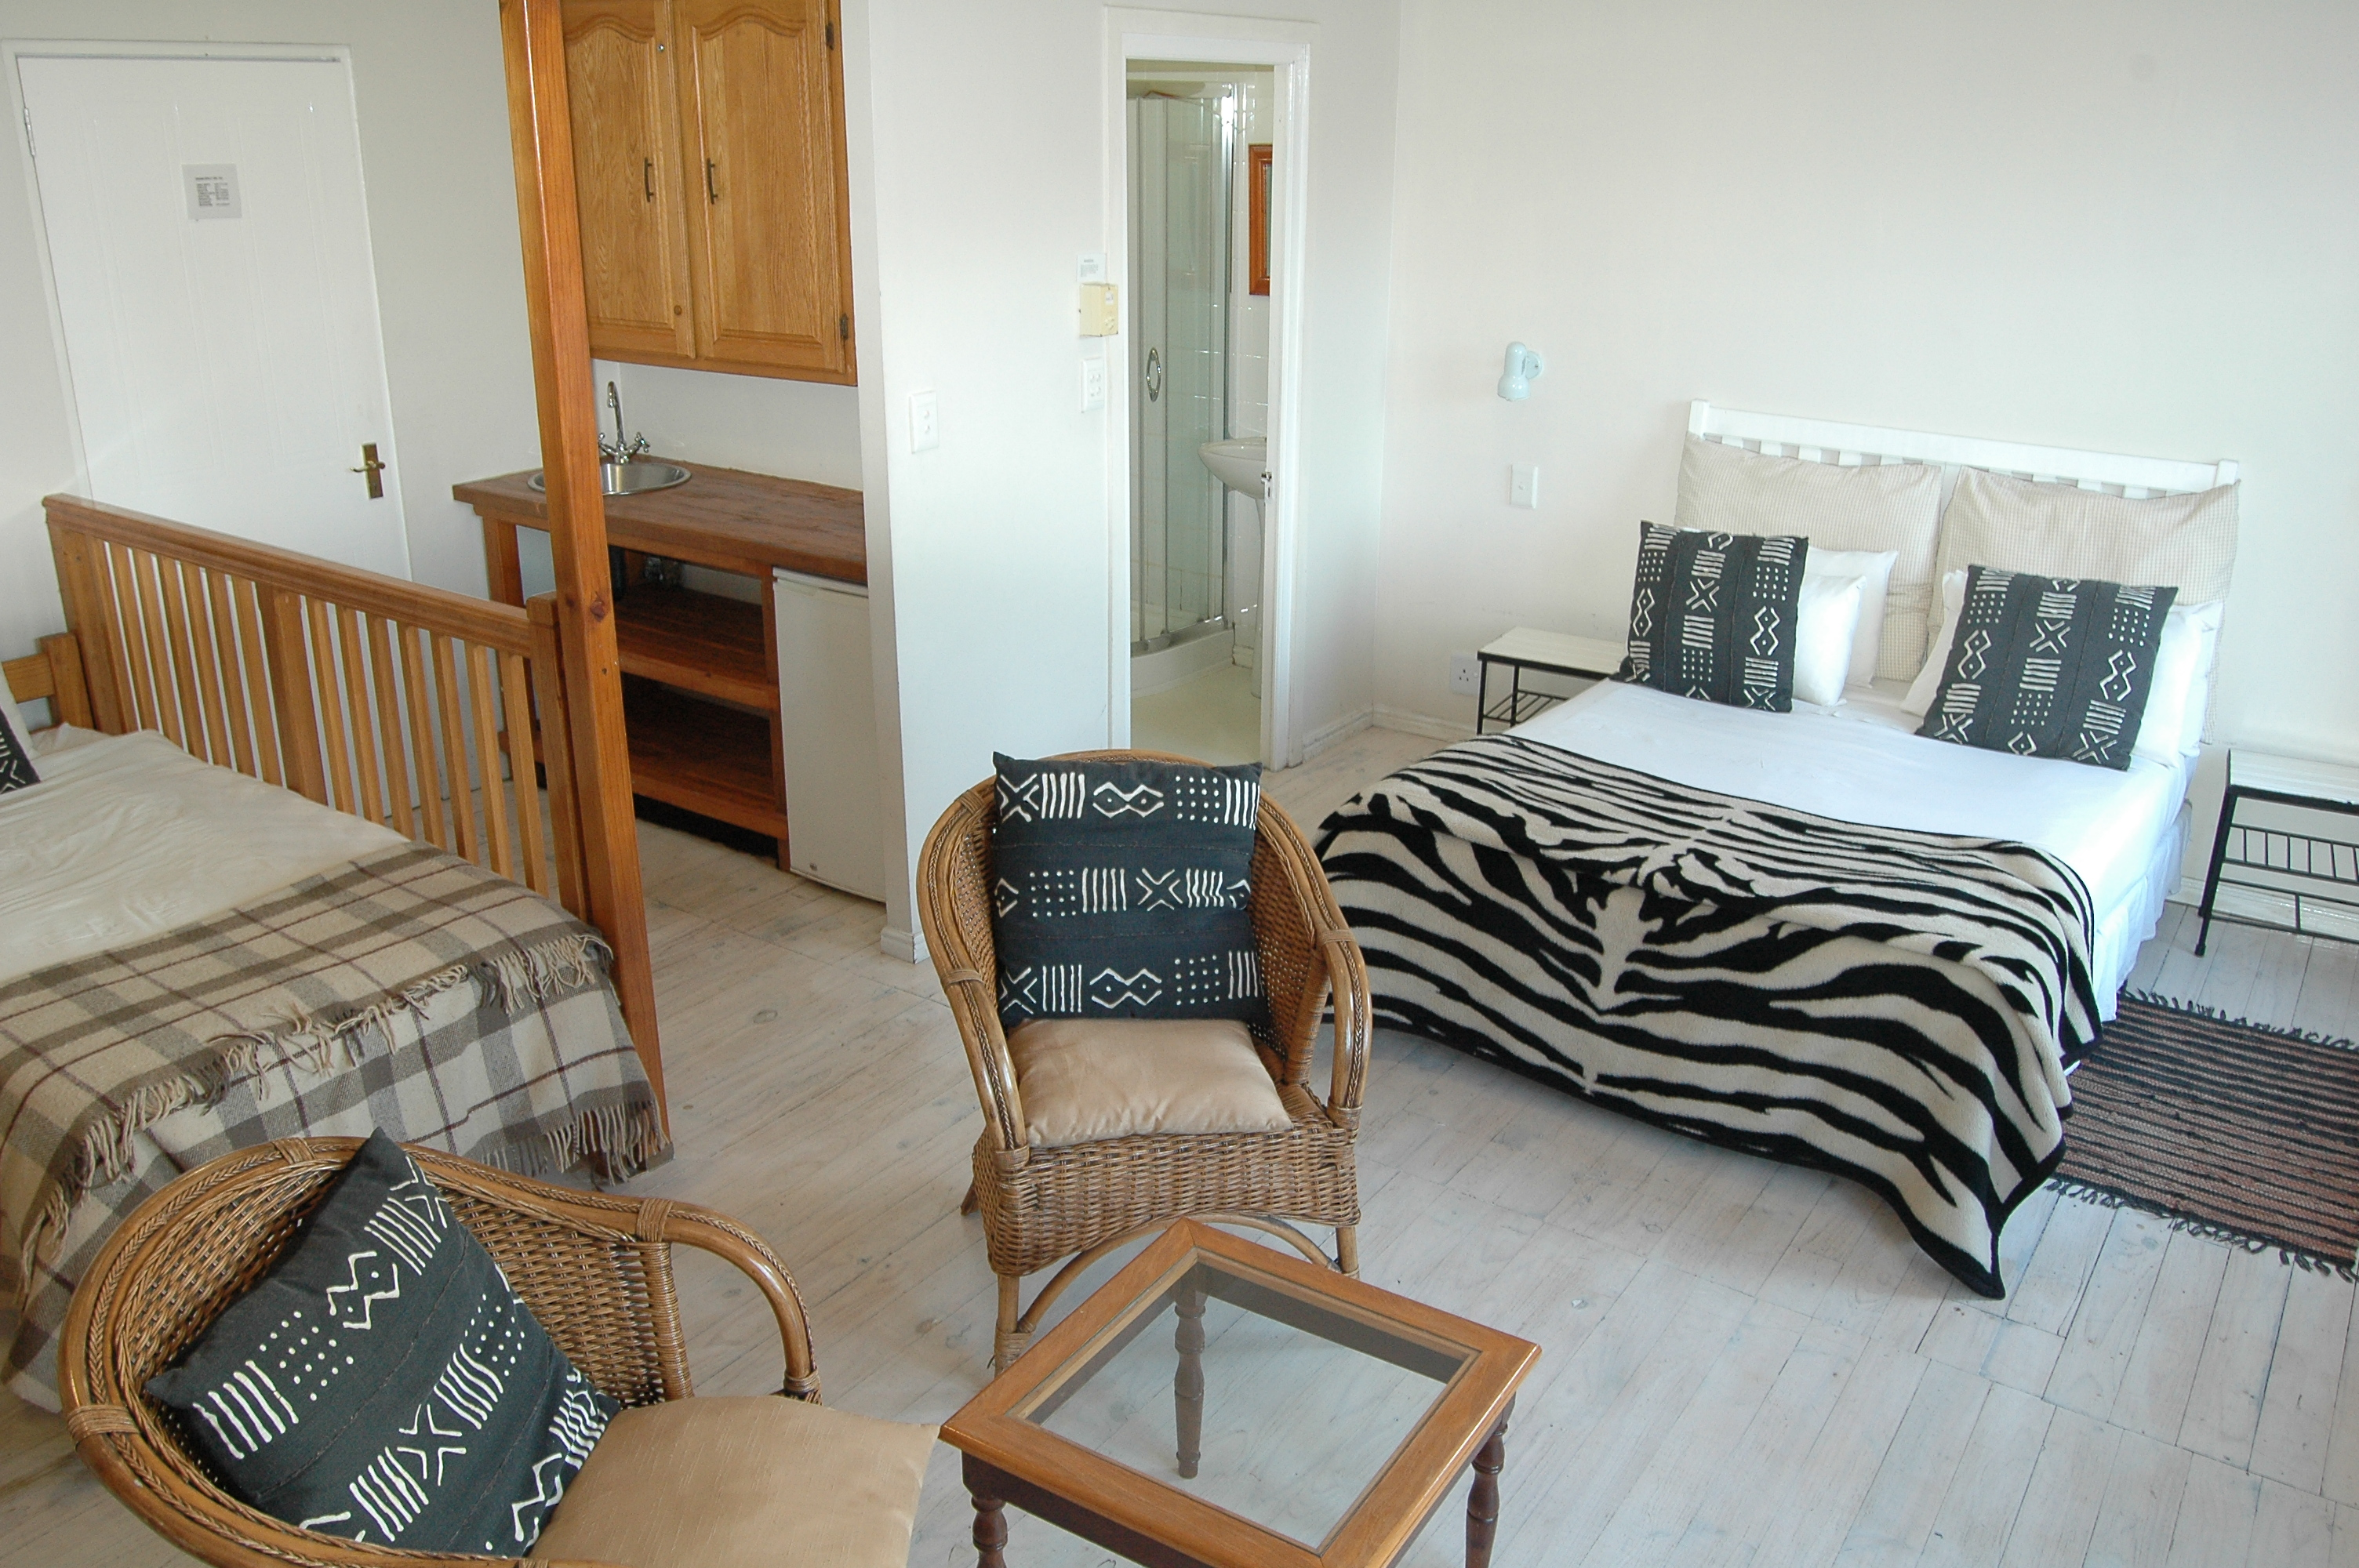 Baleens Hotel, Hermanus, Family Room with Double bed and 2 single beds